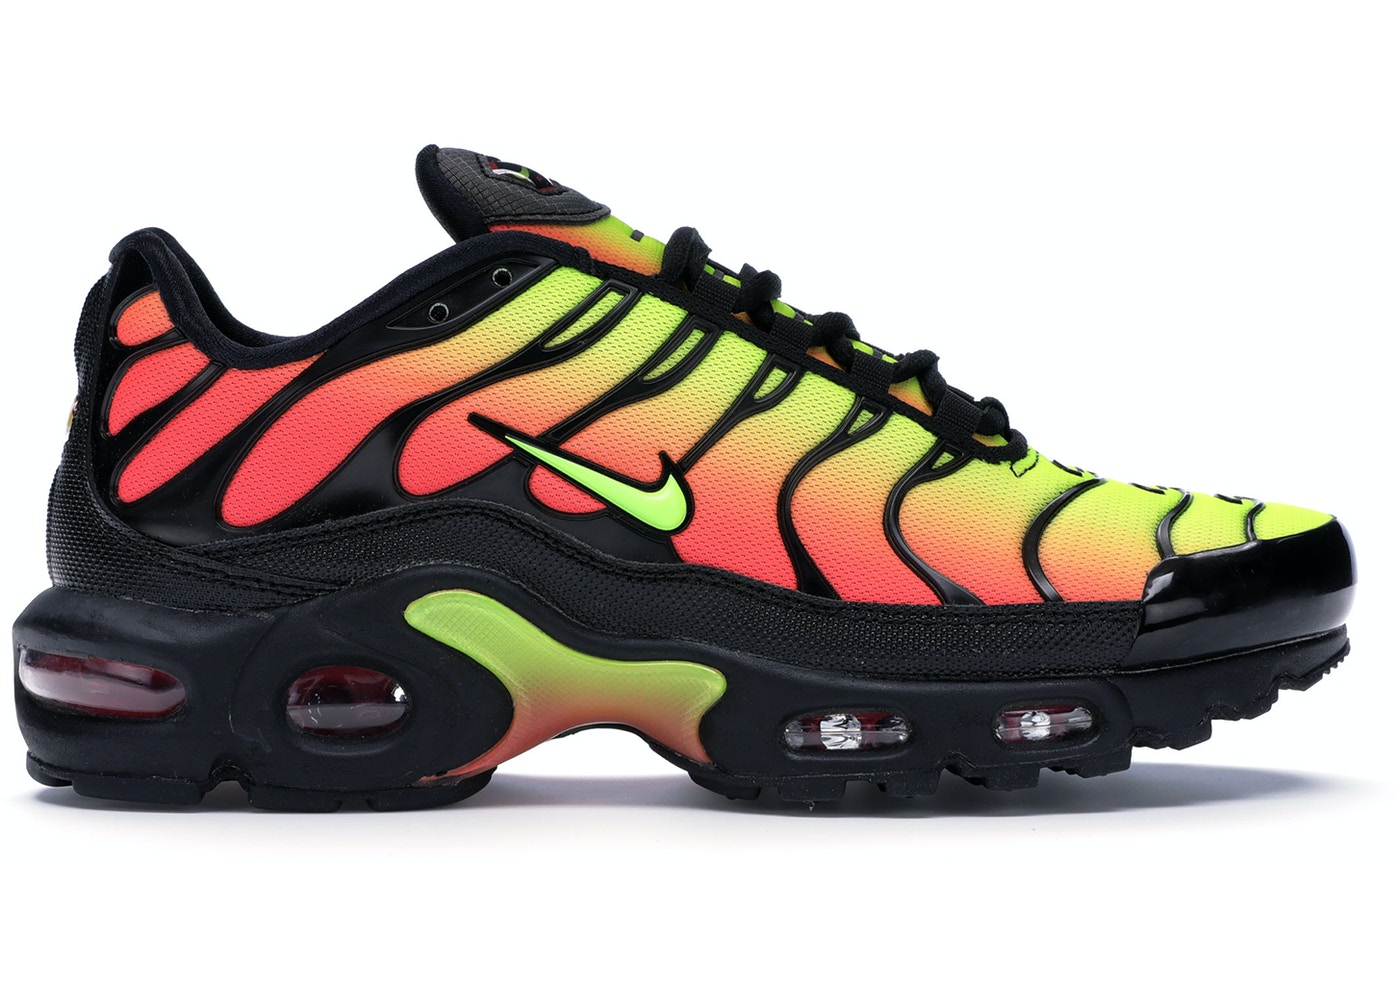 sports shoes bd922 33dbc Buy Nike Air Max Plus Shoes & Deadstock Sneakers